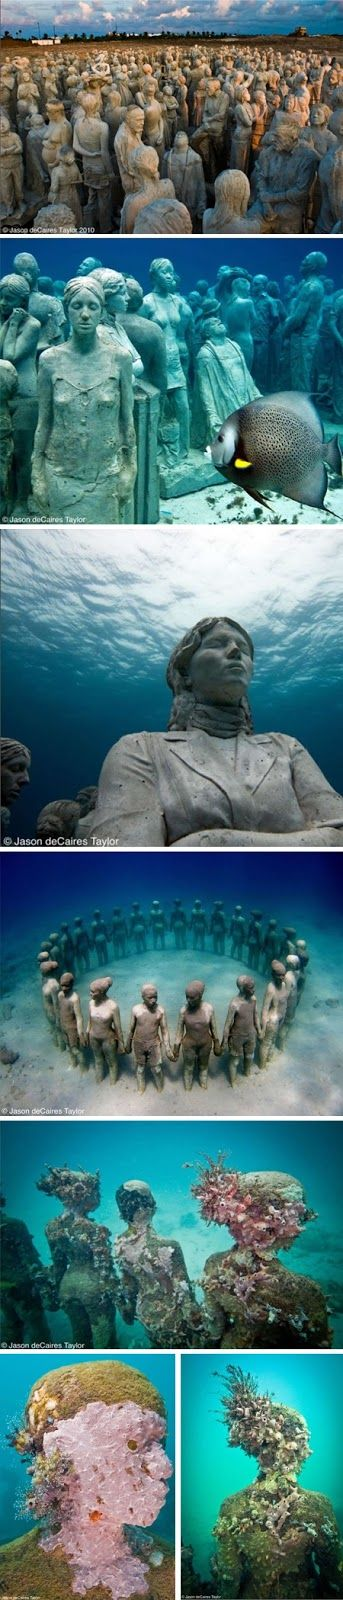 """Cancun Underwater Museum is a series of sculptures by Jason deCaires Taylor placed underwater off the coast of Isla de Mujeres and Cancún, Mexico. The project began in November 2009 with placement of a hundred statues in shallow waters of the Cancún National Marine Park..."""